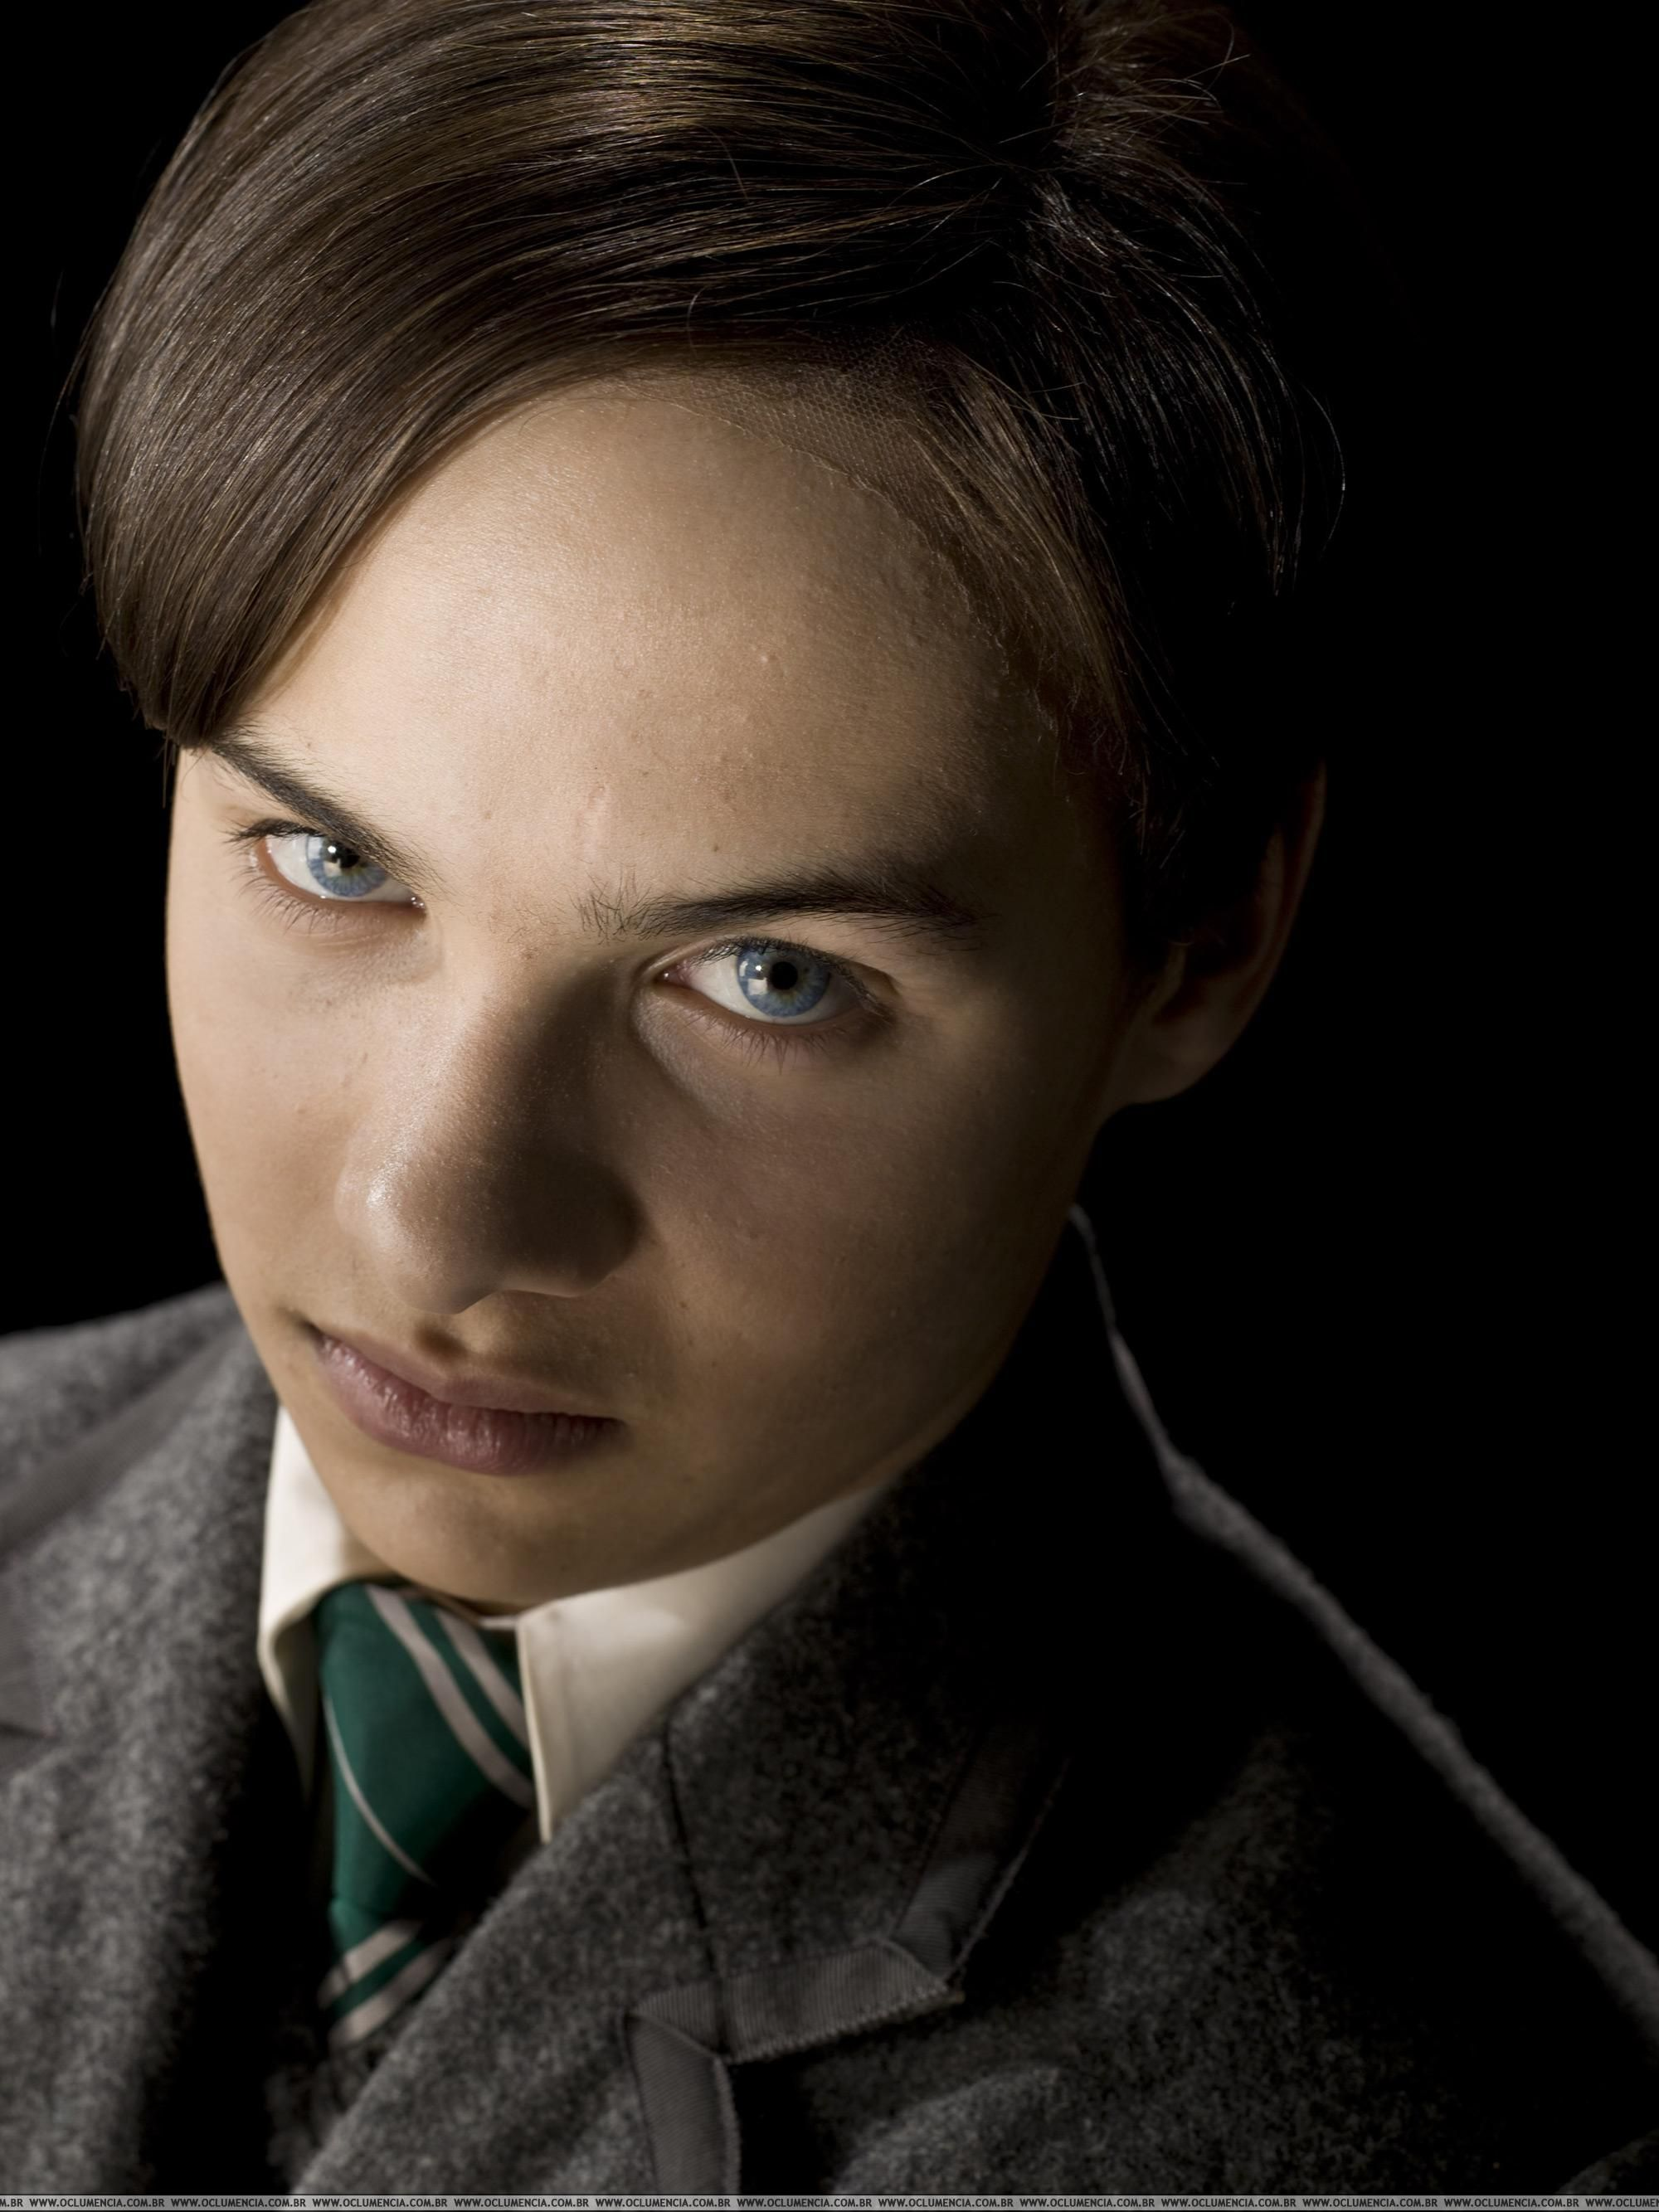 best images about tom riddle lord voldemort 17 best images about tom riddle lord voldemort posts and toms